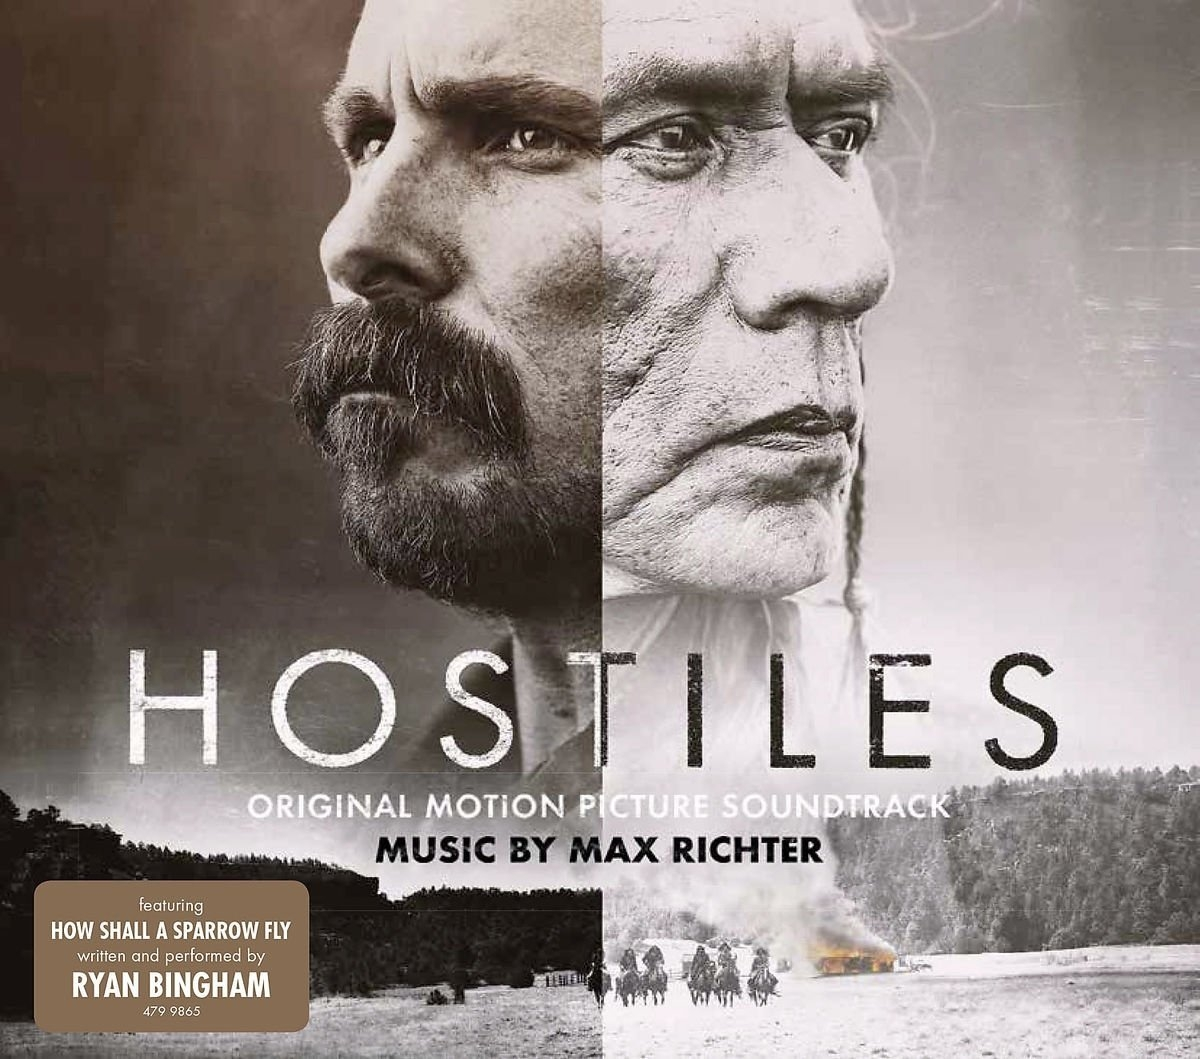 ost 02 18 Hostiles DG M Richter